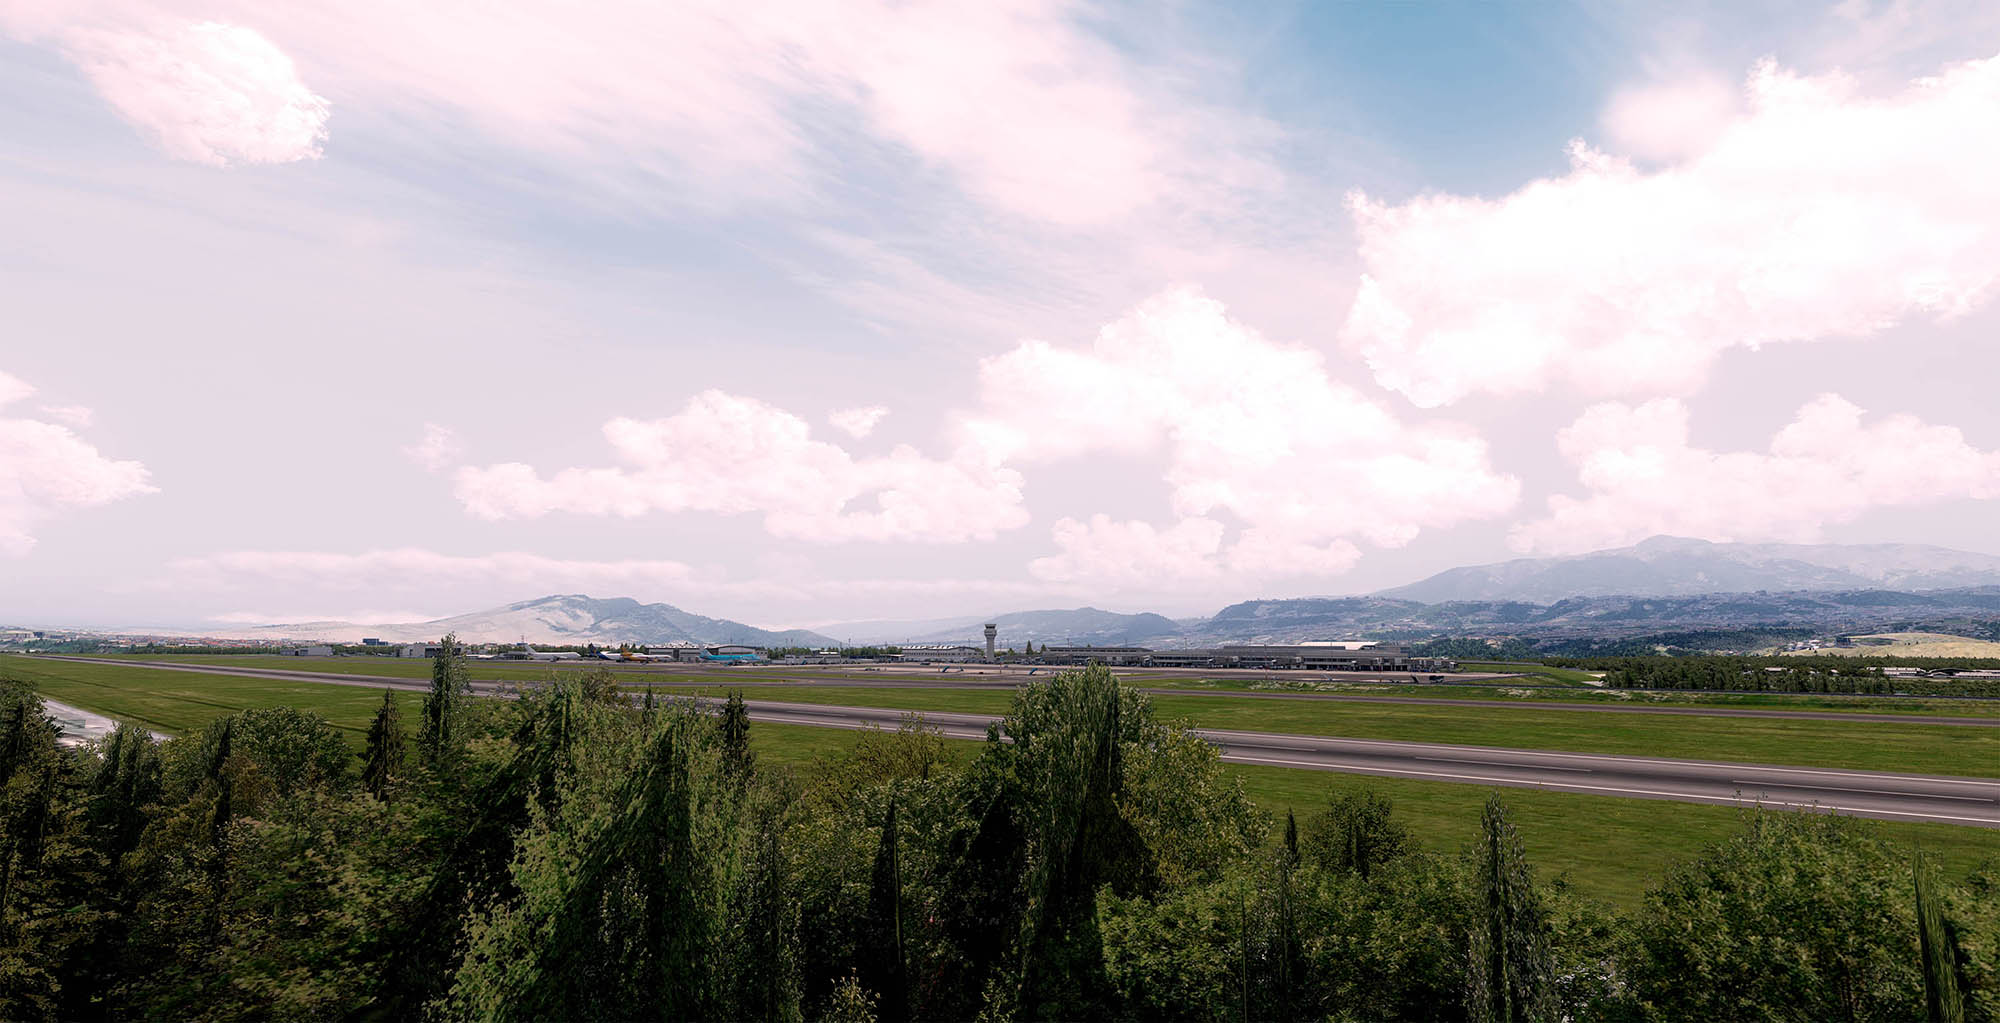 FLIGHTBEAM STUDIOS - SEQM - MARISCAL SUCRE (QUITO) INTERNATIONAL P3D4 P3D5